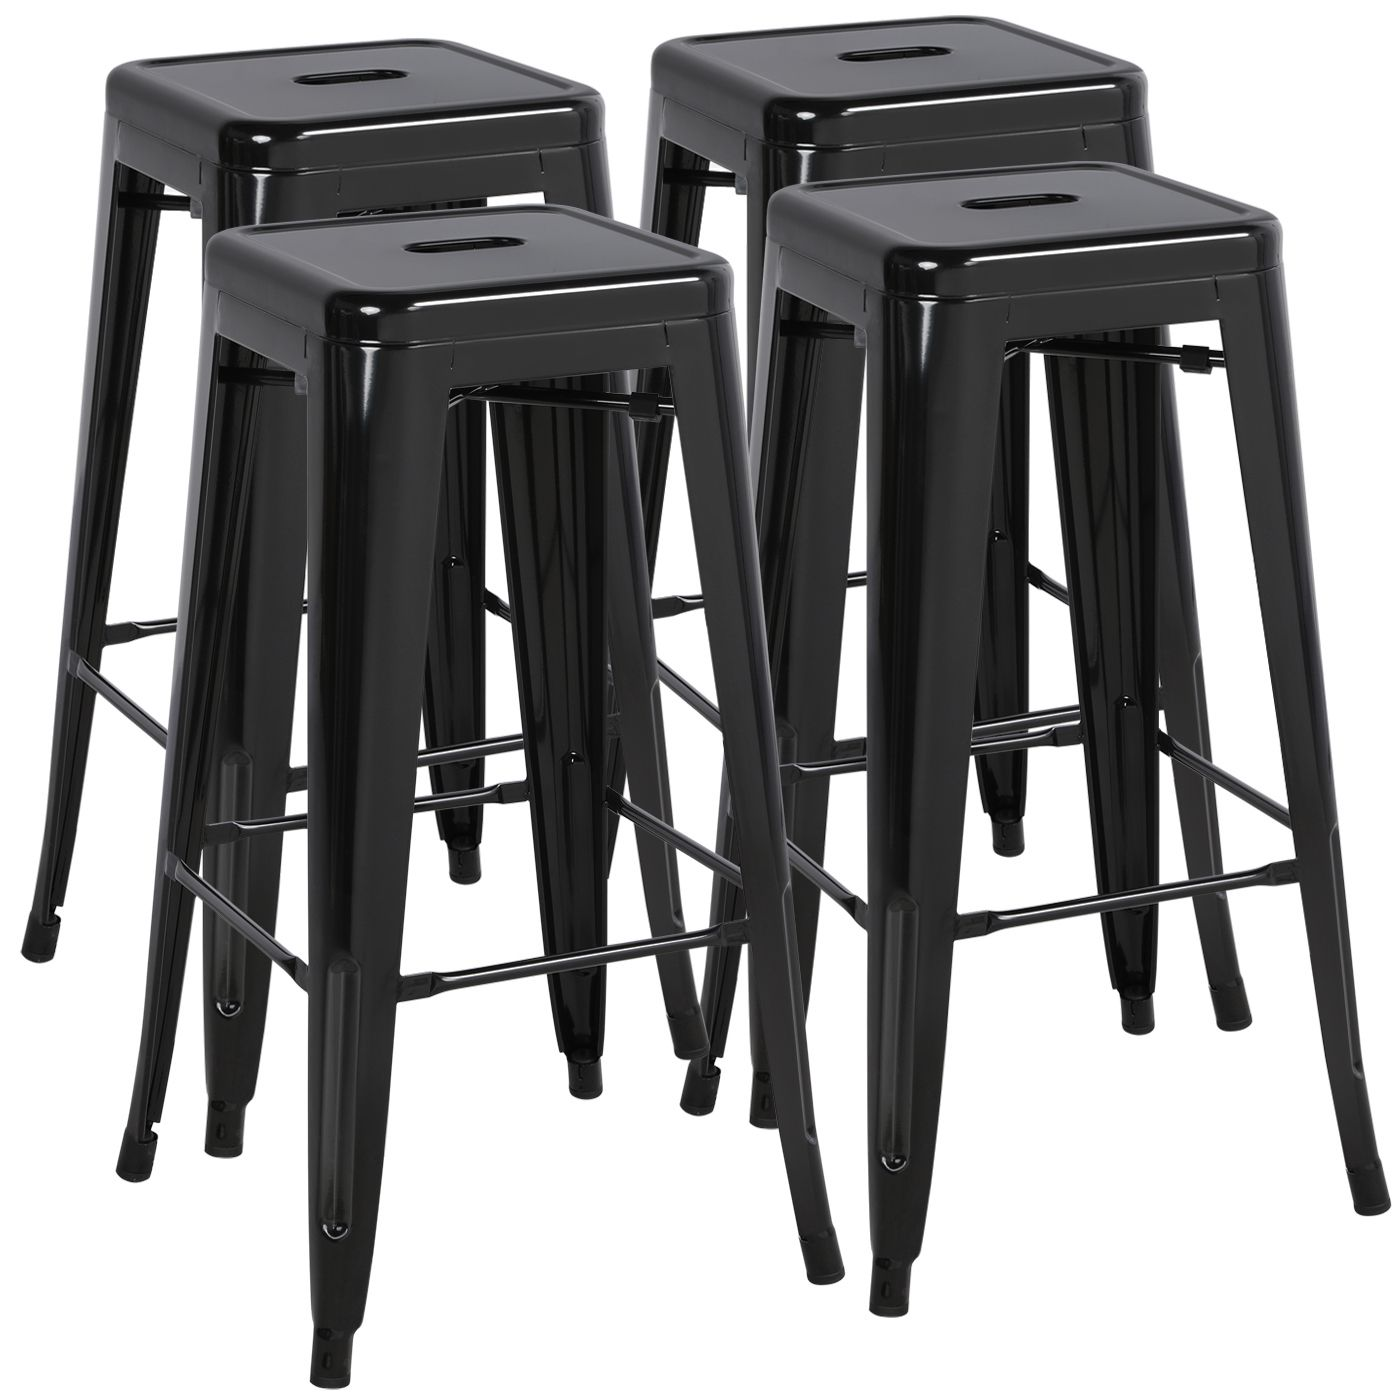 Easyfashion 30 High Stackable Metal Bar Stools Kitchen Dining Bar Chairs Backless Set Of 4 Counter Stool Black Walmart Com In 2020 Metal Bar Stools Kitchen Bar Stools Metal Bar Stools